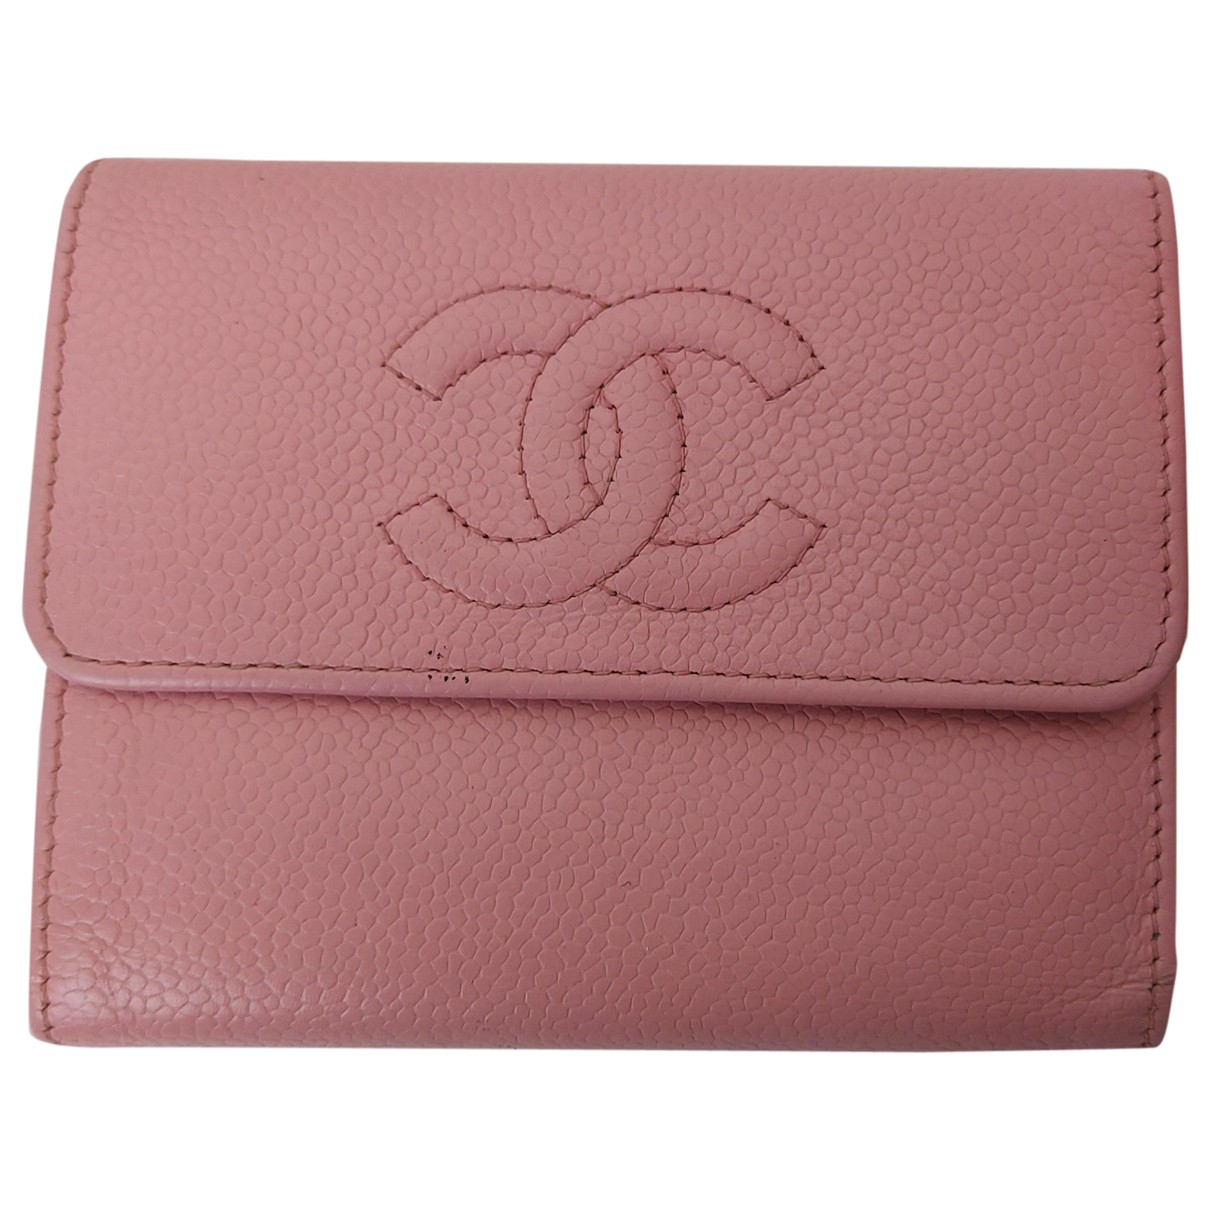 Chanel \N Pink Leather wallet for Women \N